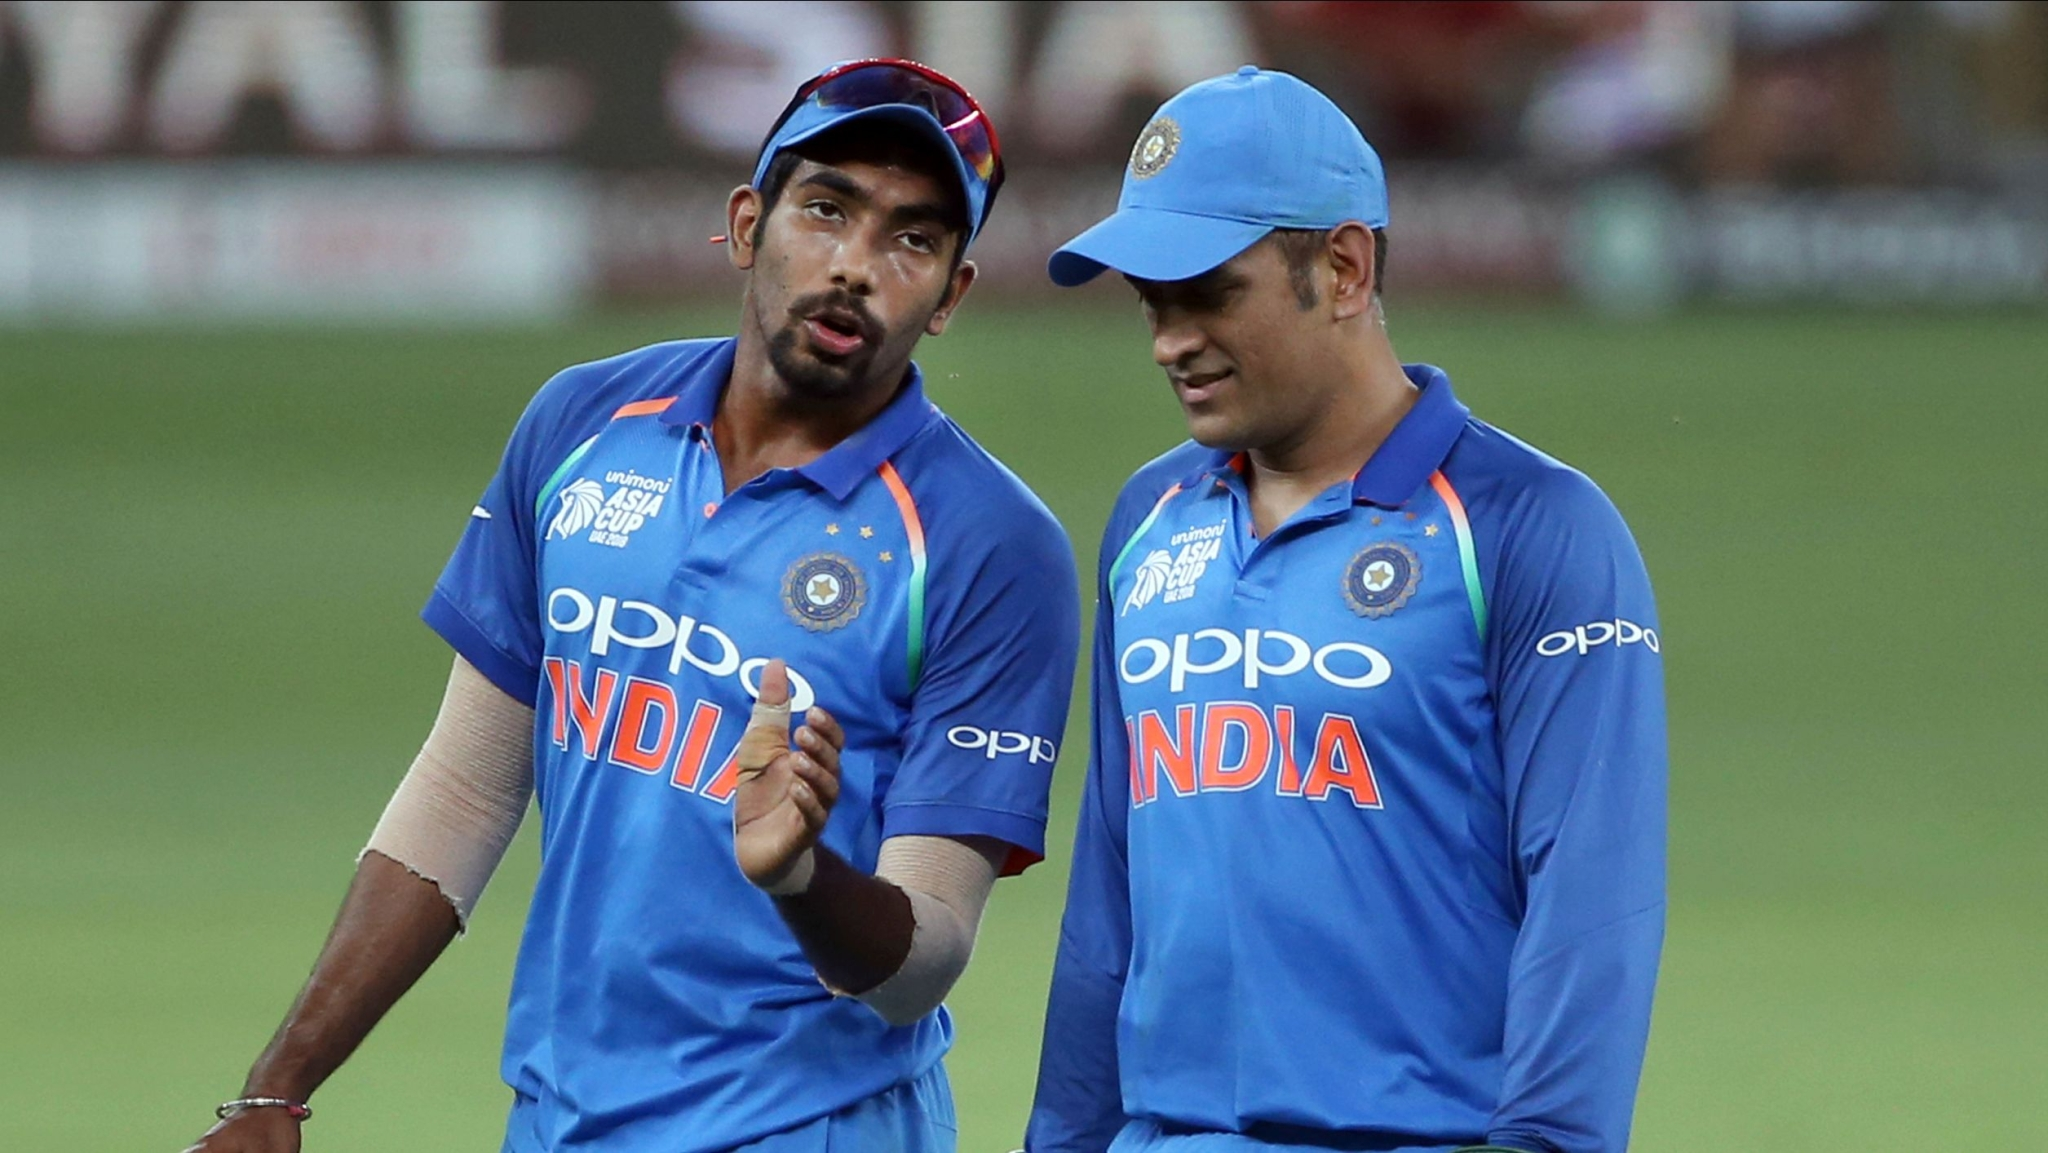 No Dhoni, Bhuvi, Bumrah for T20Is vs South Africa, Hardik Returns